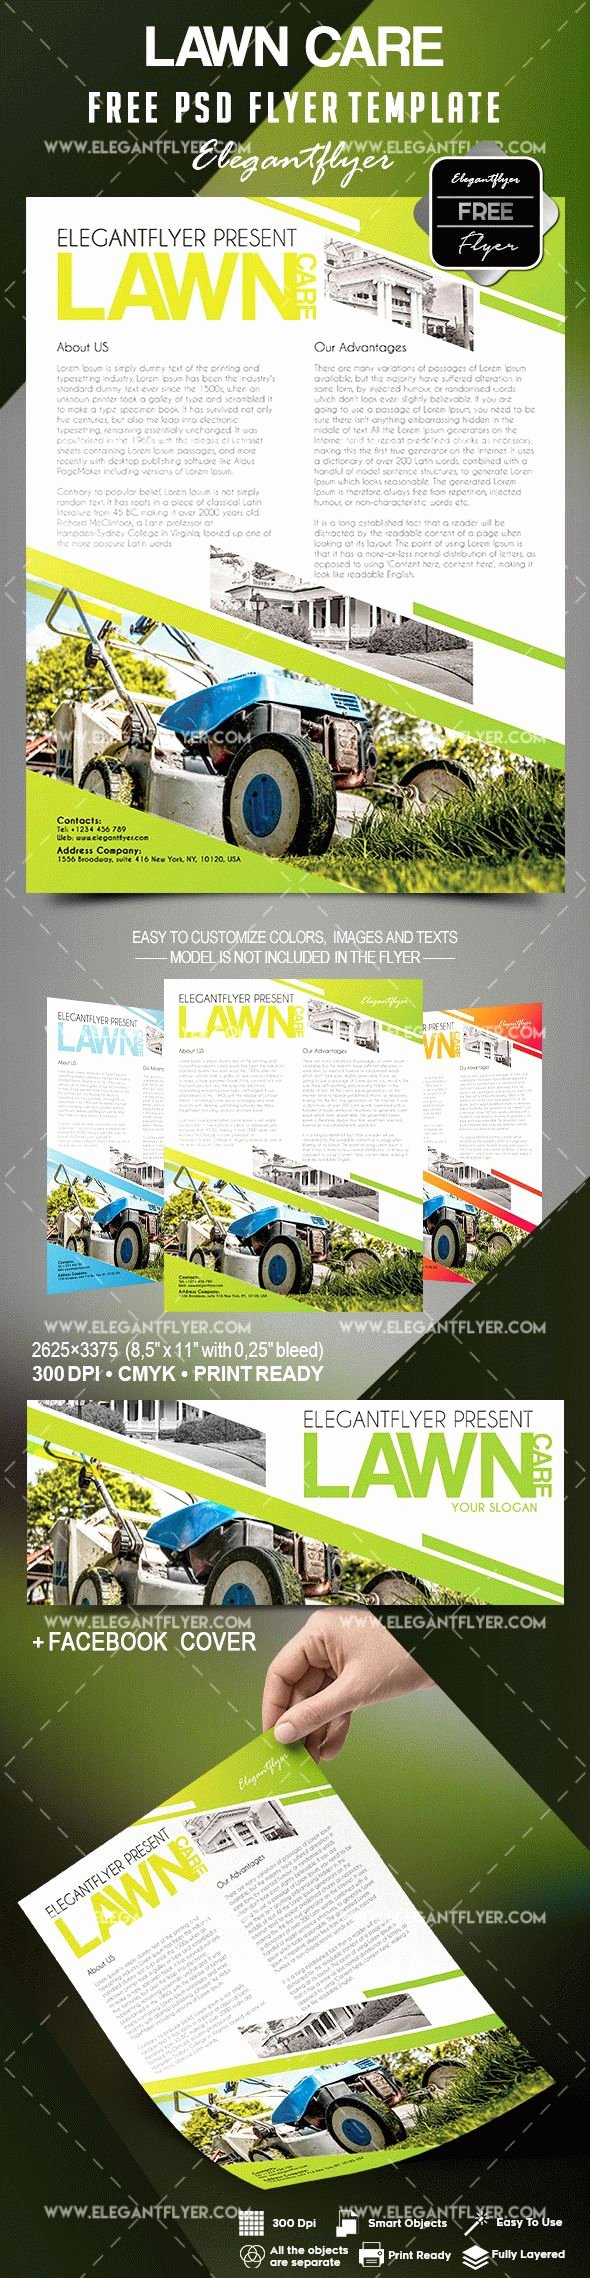 Lawn Care Flyers Template Unique Lawn Care Flyers Templates Free – by Elegantflyer